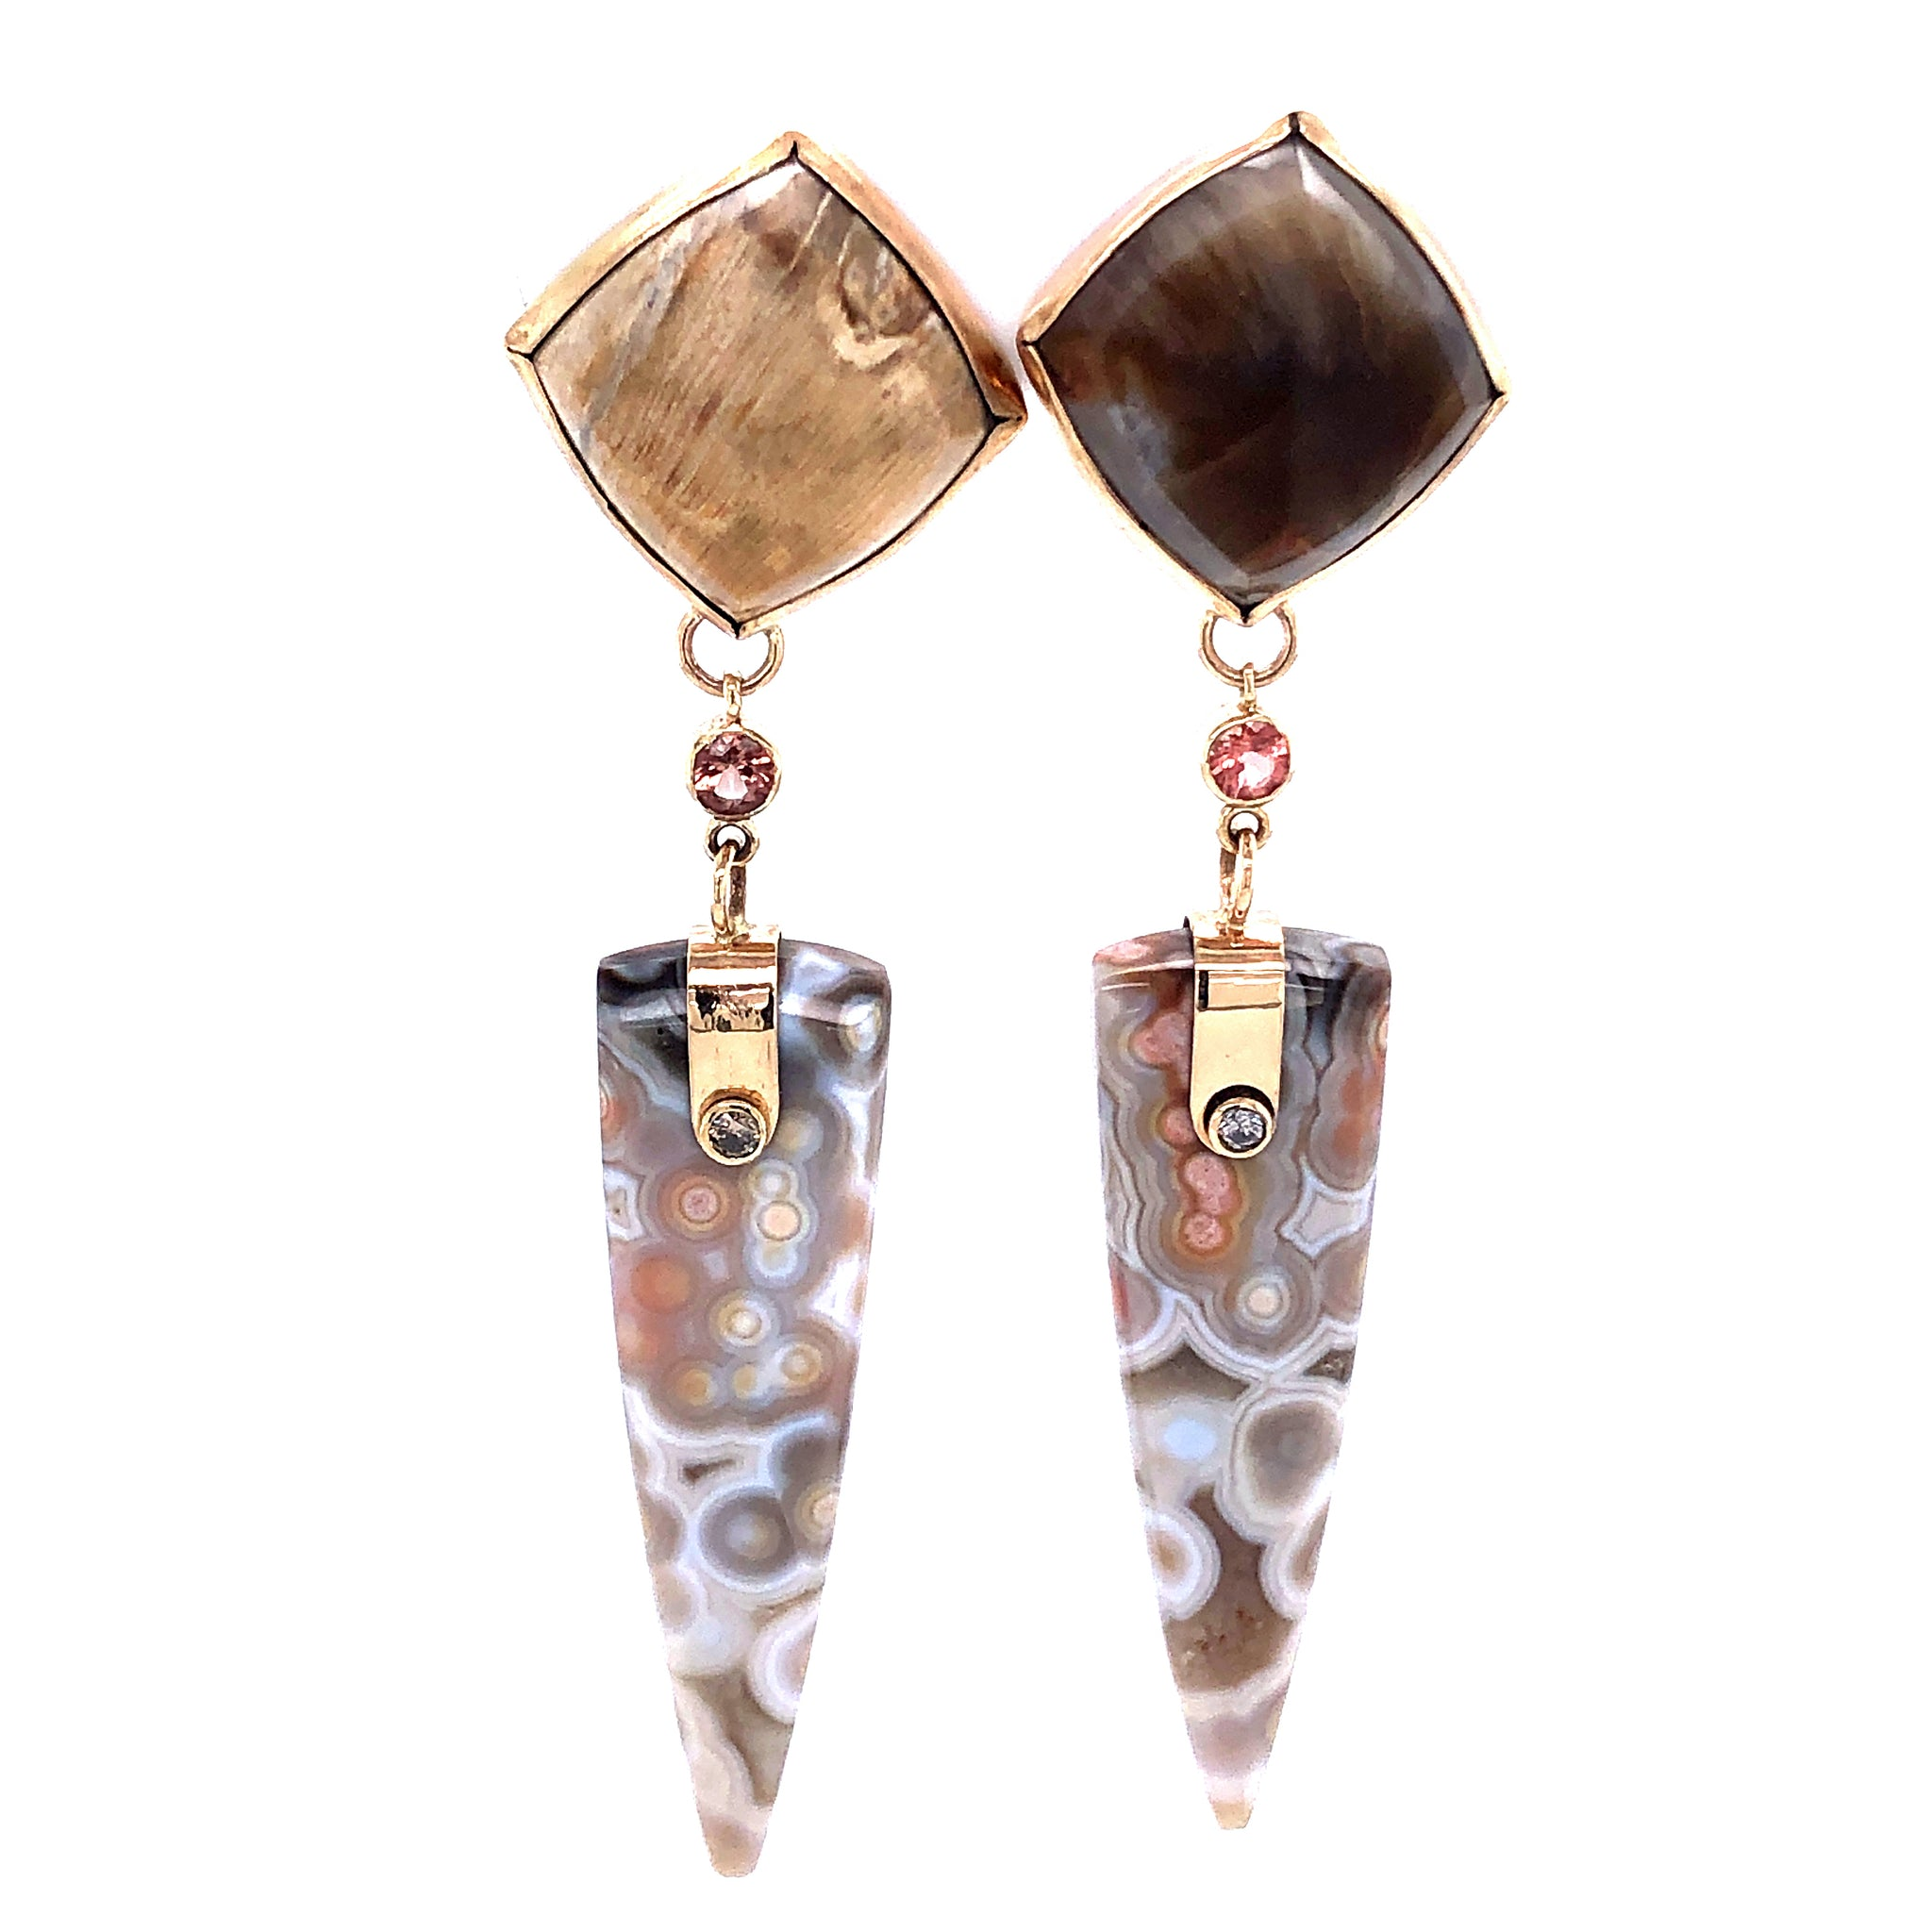 Sunstone, Ocean Jasper, and Petrified Wood Earrings, Handmade in 14k Gold